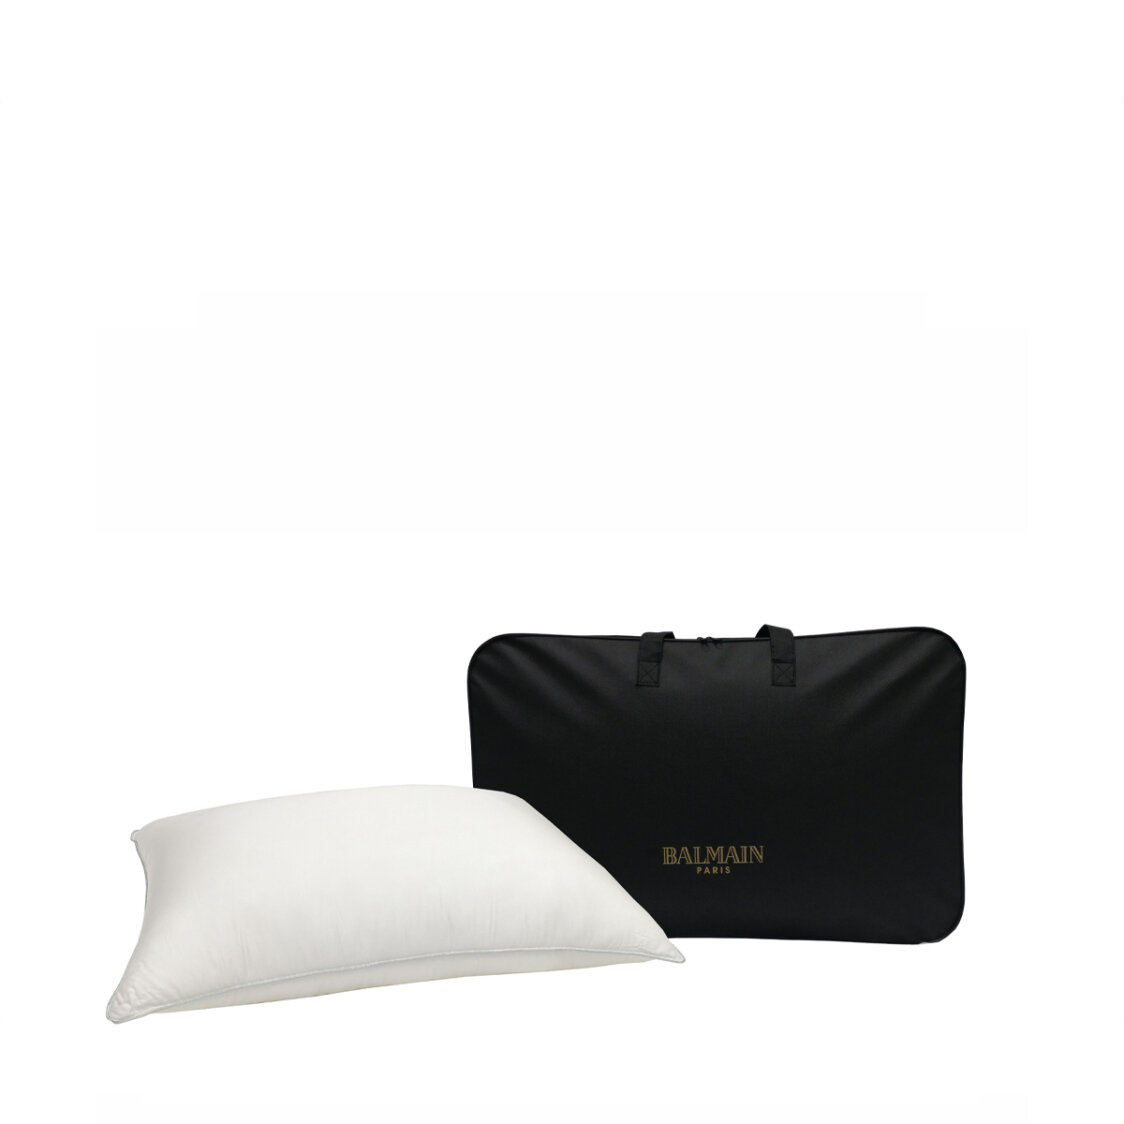 Balmain Black Label BambooPro Pillow 1700g